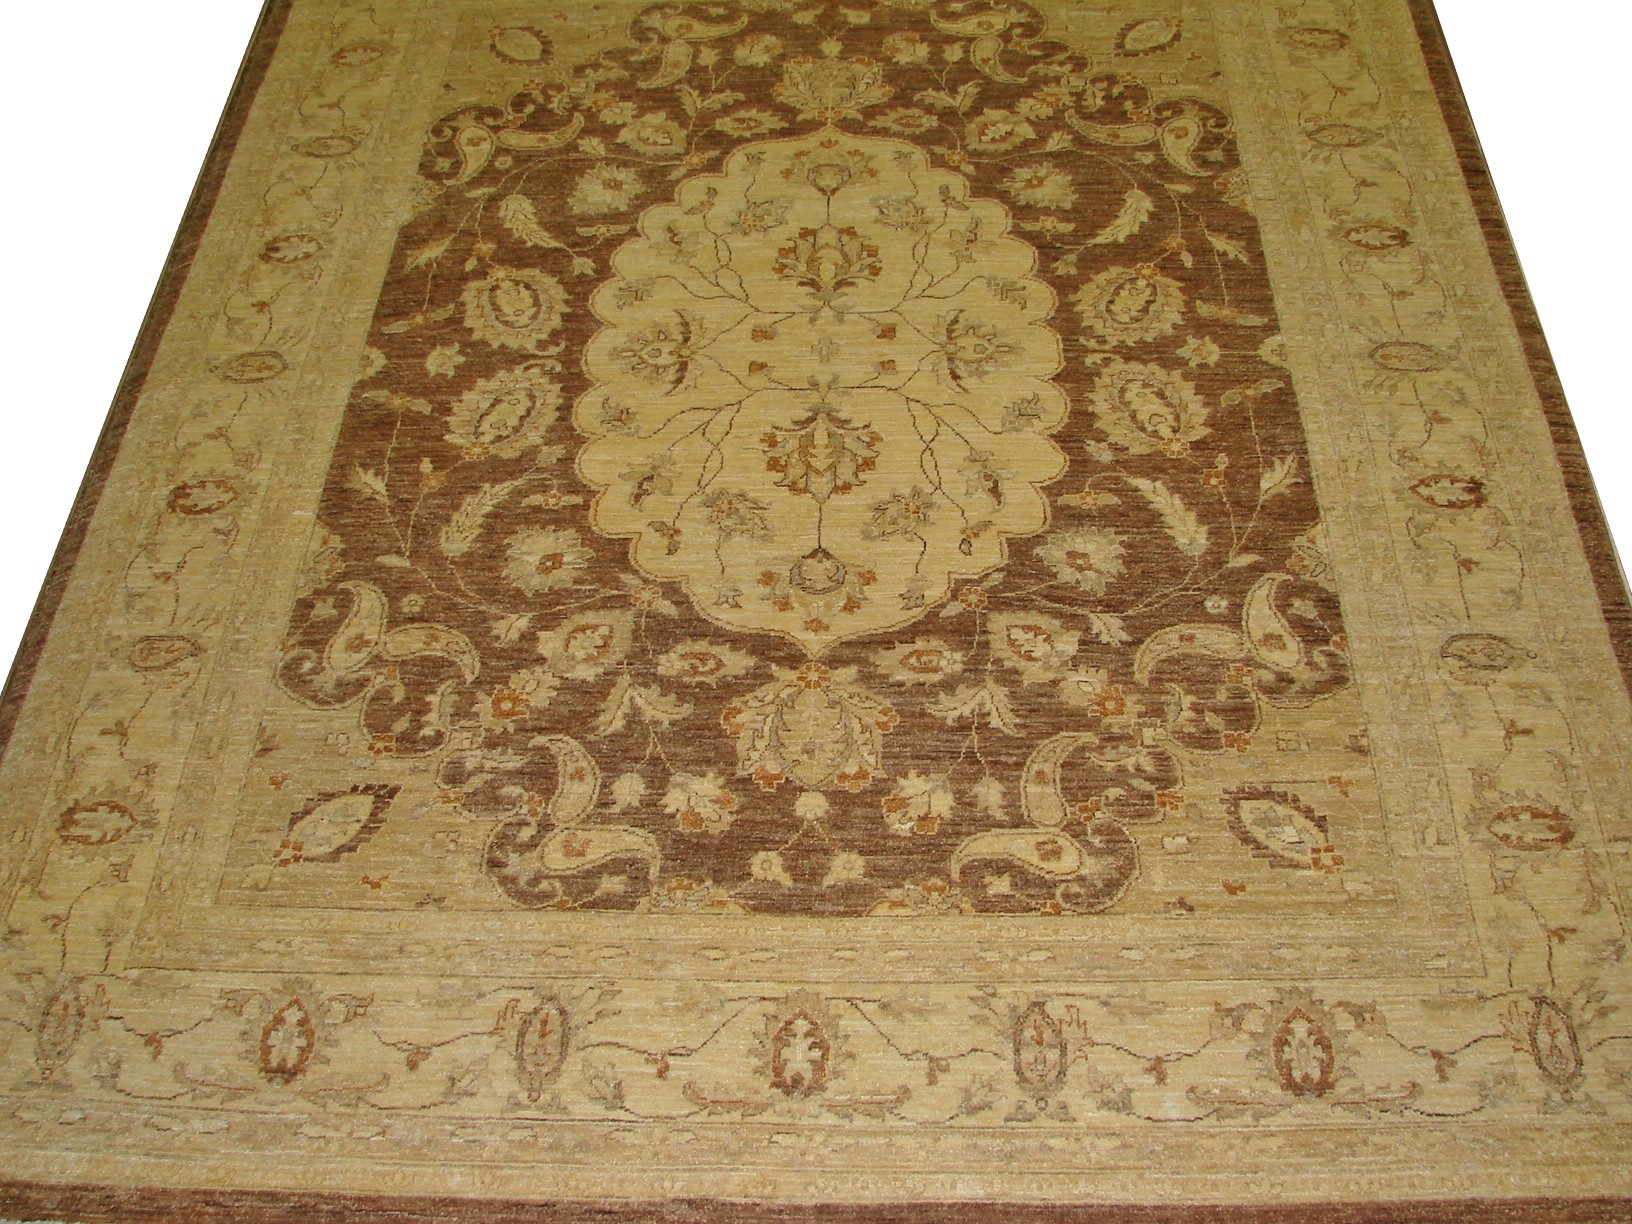 8x10 Peshawar Hand Knotted Wool Area Rug - MR10609